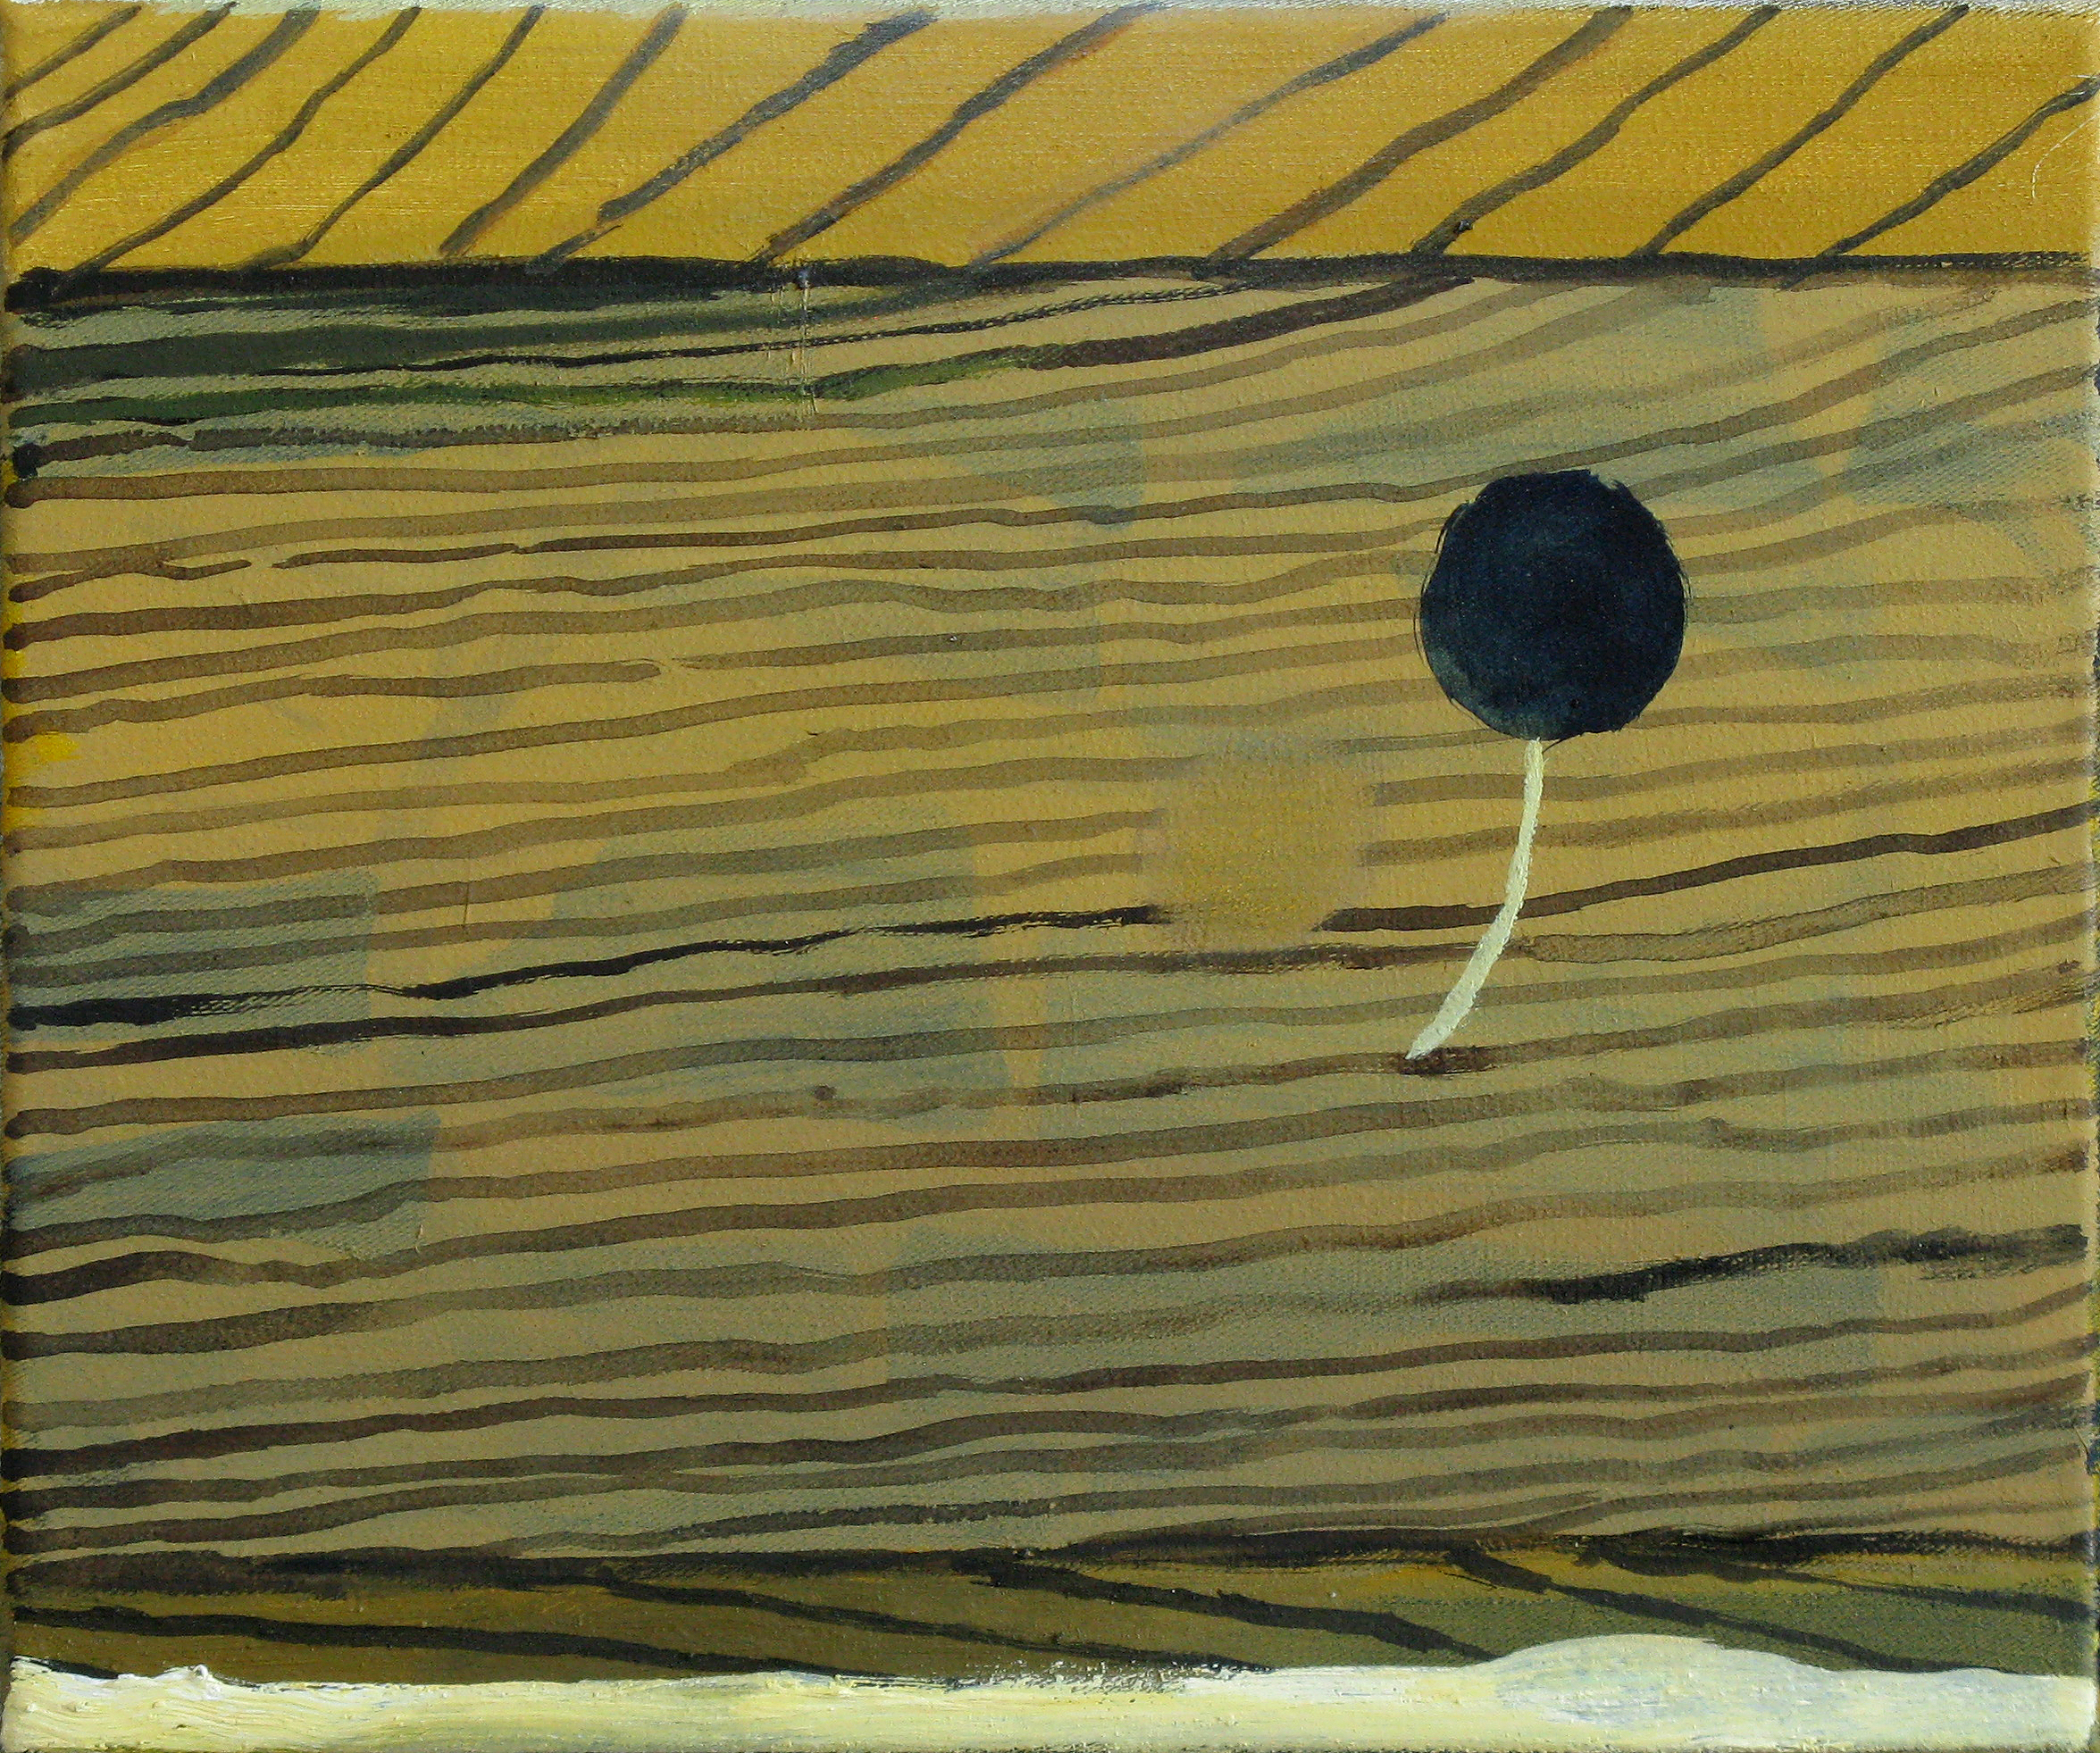 """CHRISTOPH ROßNER   Small Wooden Piece, oil and acrylic on canvas, 10"""" x 11.75"""", 2010"""